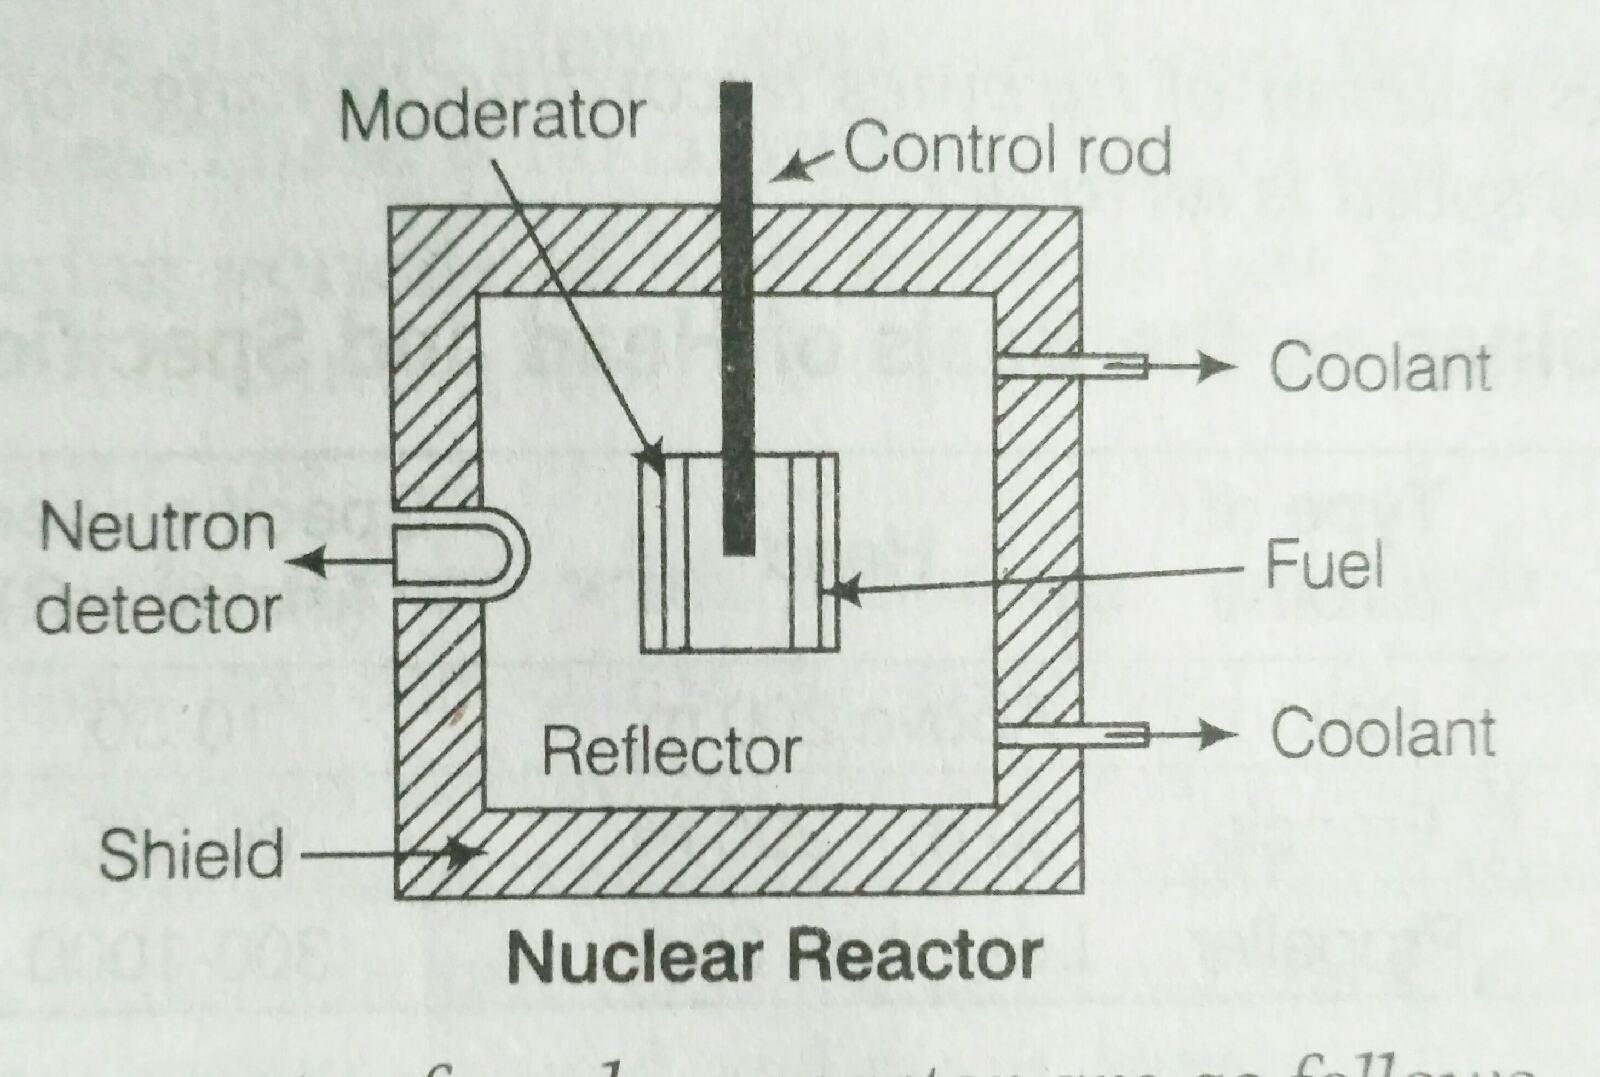 WHAT IS NUCLEAR REACTOR